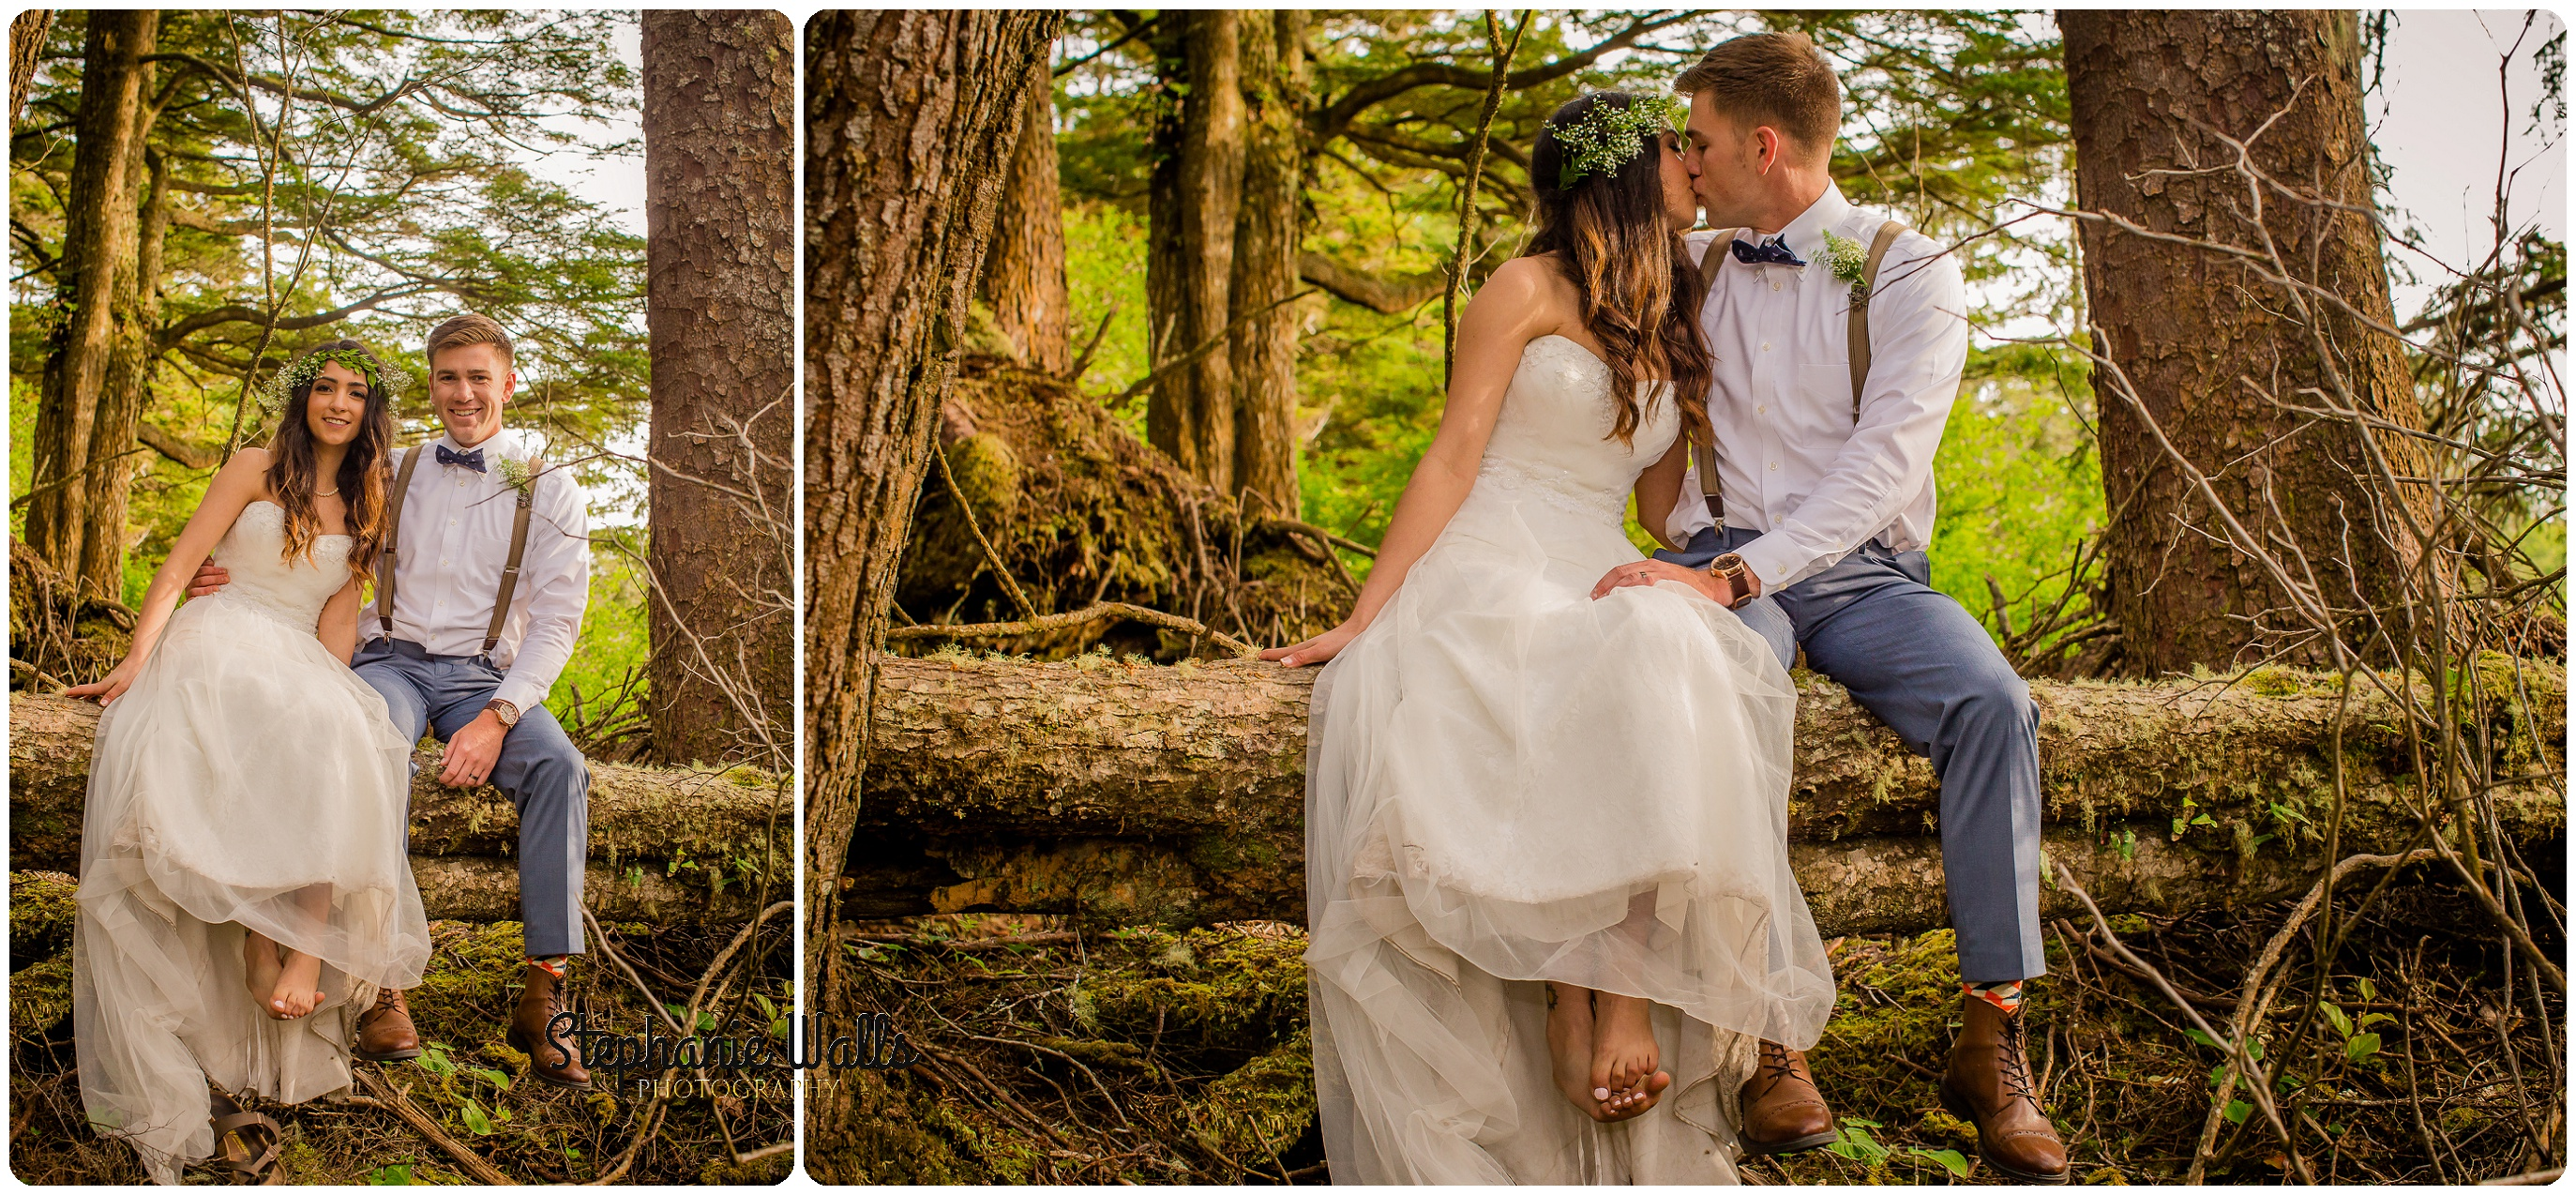 Belfour 398 INTIMATE CLIFFSIDE ELOPEMENT | CAPE FLATTERY NEAH BAY | STEPHANIE WALLS PHOTOGRAPHY